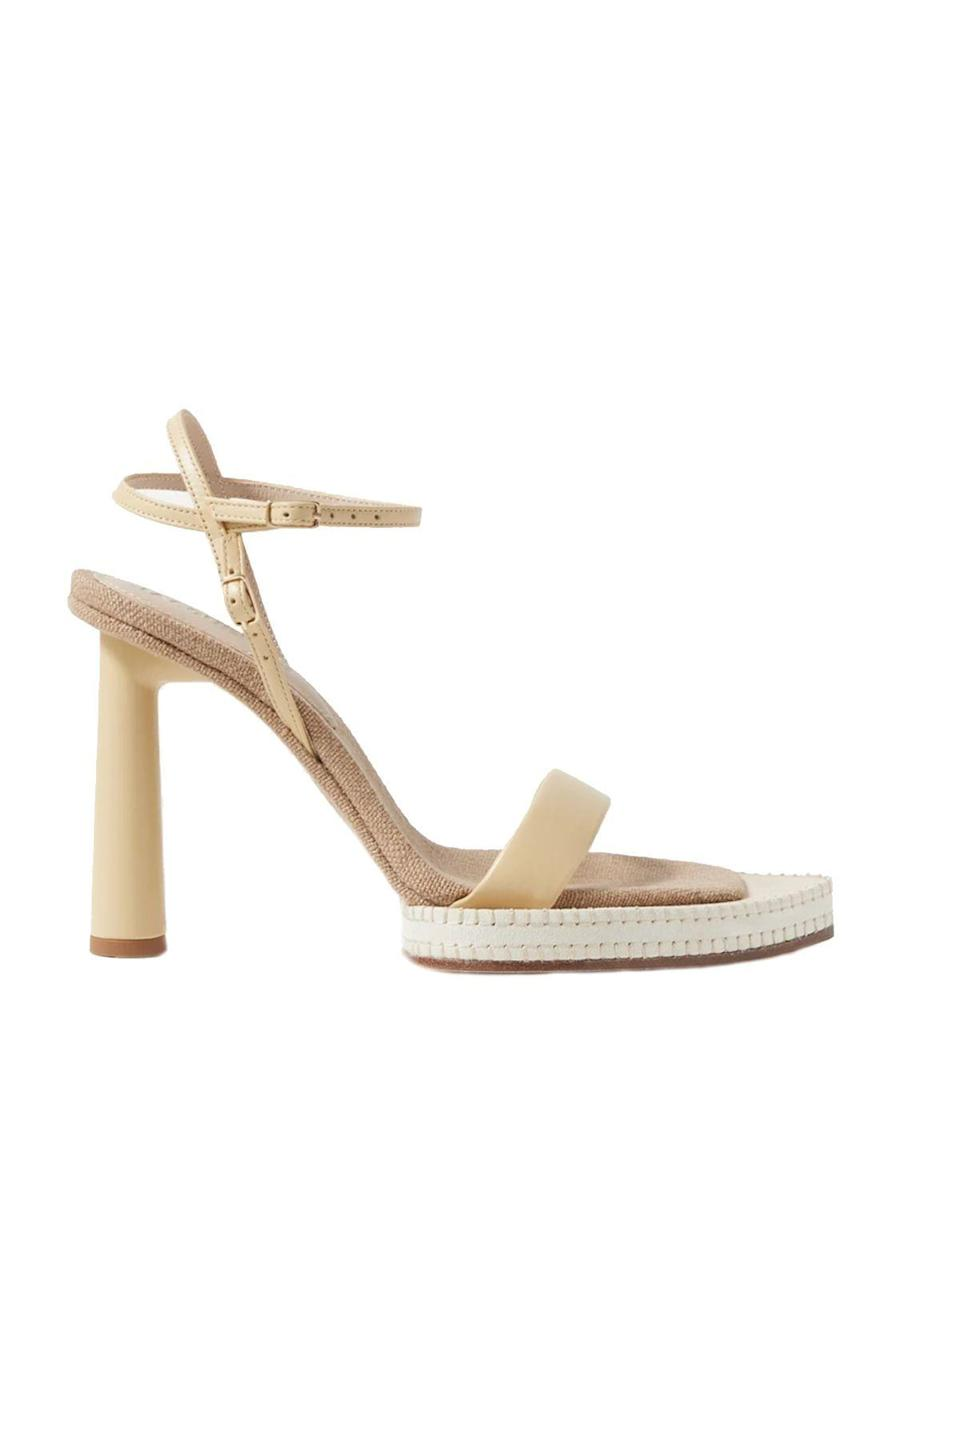 """<p><strong>Jacquemus</strong></p><p>net-a-porter.com</p><p><strong>$700.00</strong></p><p><a href=""""https://go.redirectingat.com?id=74968X1596630&url=https%3A%2F%2Fwww.net-a-porter.com%2Fen-us%2Fshop%2Fproduct%2Fjacquemus%2Fshoes%2Fhigh-heel%2Fnovio-leather-sandals%2F22527730565883580&sref=https%3A%2F%2Fwww.townandcountrymag.com%2Fstyle%2Ffashion-trends%2Fg36474527%2Fstatement-heels%2F"""" rel=""""nofollow noopener"""" target=""""_blank"""" data-ylk=""""slk:Shop Now"""" class=""""link rapid-noclick-resp"""">Shop Now</a></p><p>These ultra-sophisticated leather sandals are perfect for summer office days with a breezy white shirtdress. </p><p><strong>More: </strong><a href=""""https://www.townandcountrymag.com/style/fashion-trends/g36342991/best-white-dresses/"""" rel=""""nofollow noopener"""" target=""""_blank"""" data-ylk=""""slk:24 Essential White Dresses for Summer"""" class=""""link rapid-noclick-resp"""">24 Essential White Dresses for Summer</a></p>"""